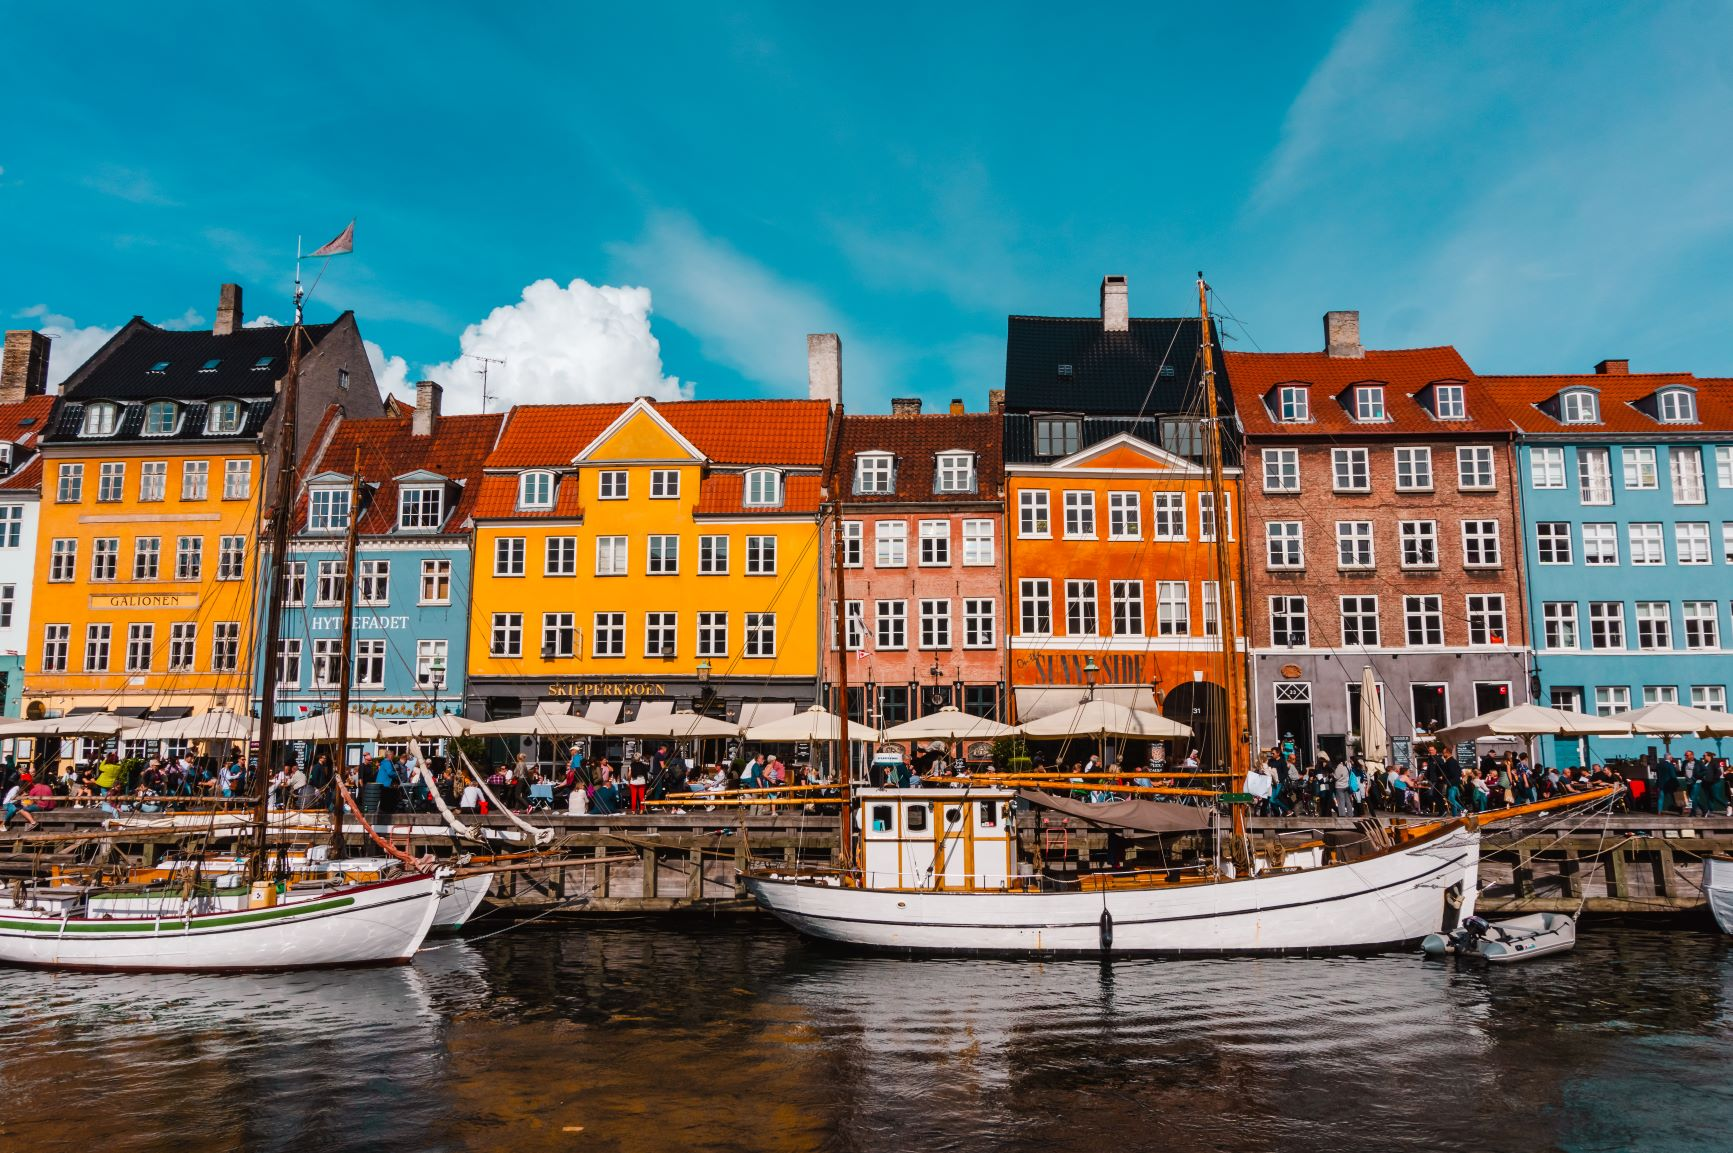 The colourful waterfront buildings of Nyhavn in Copenhagen.